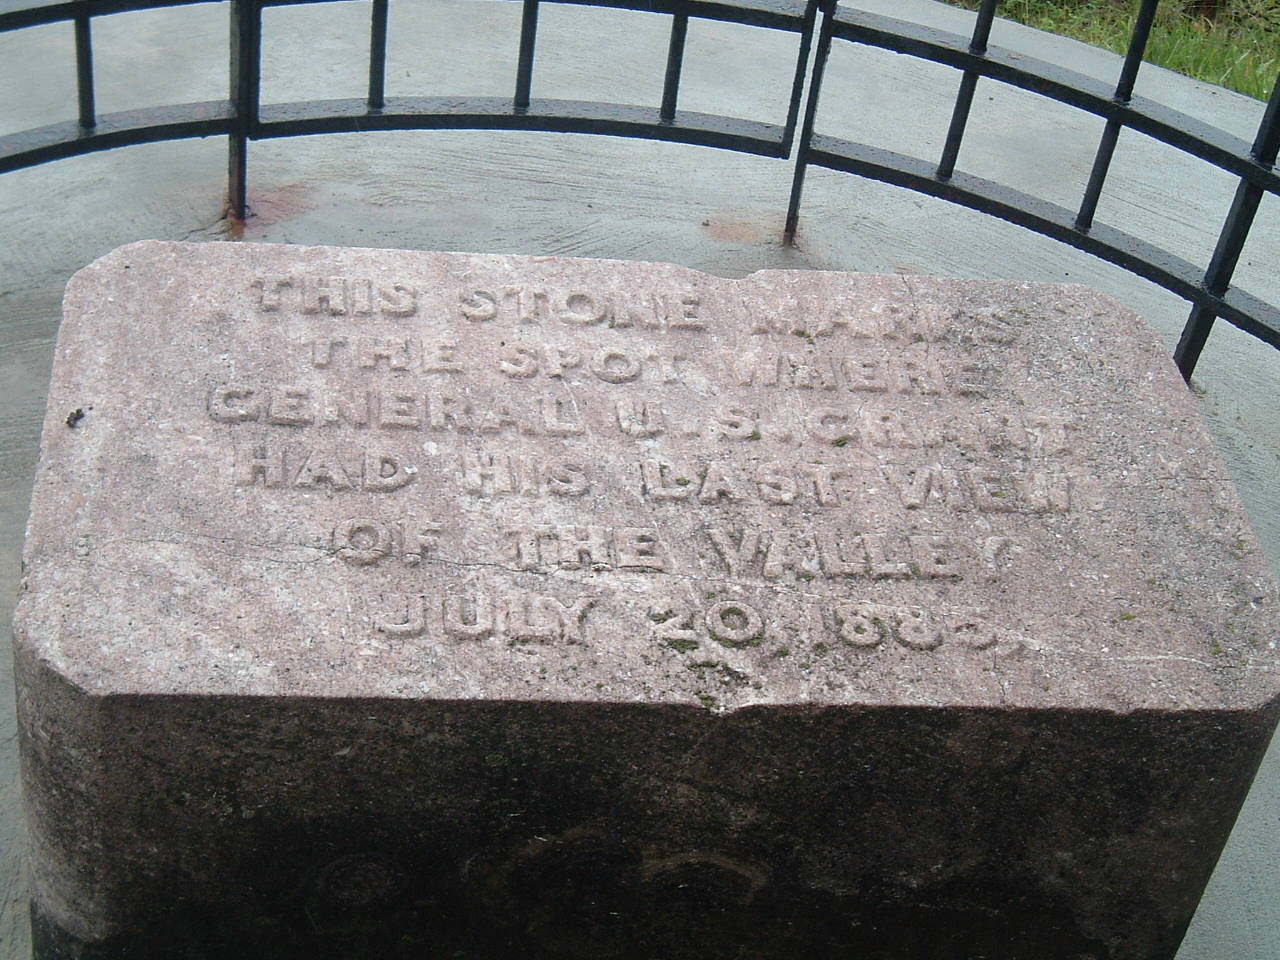 The stone marker showing the spot where Grant viewed the valley for the last time